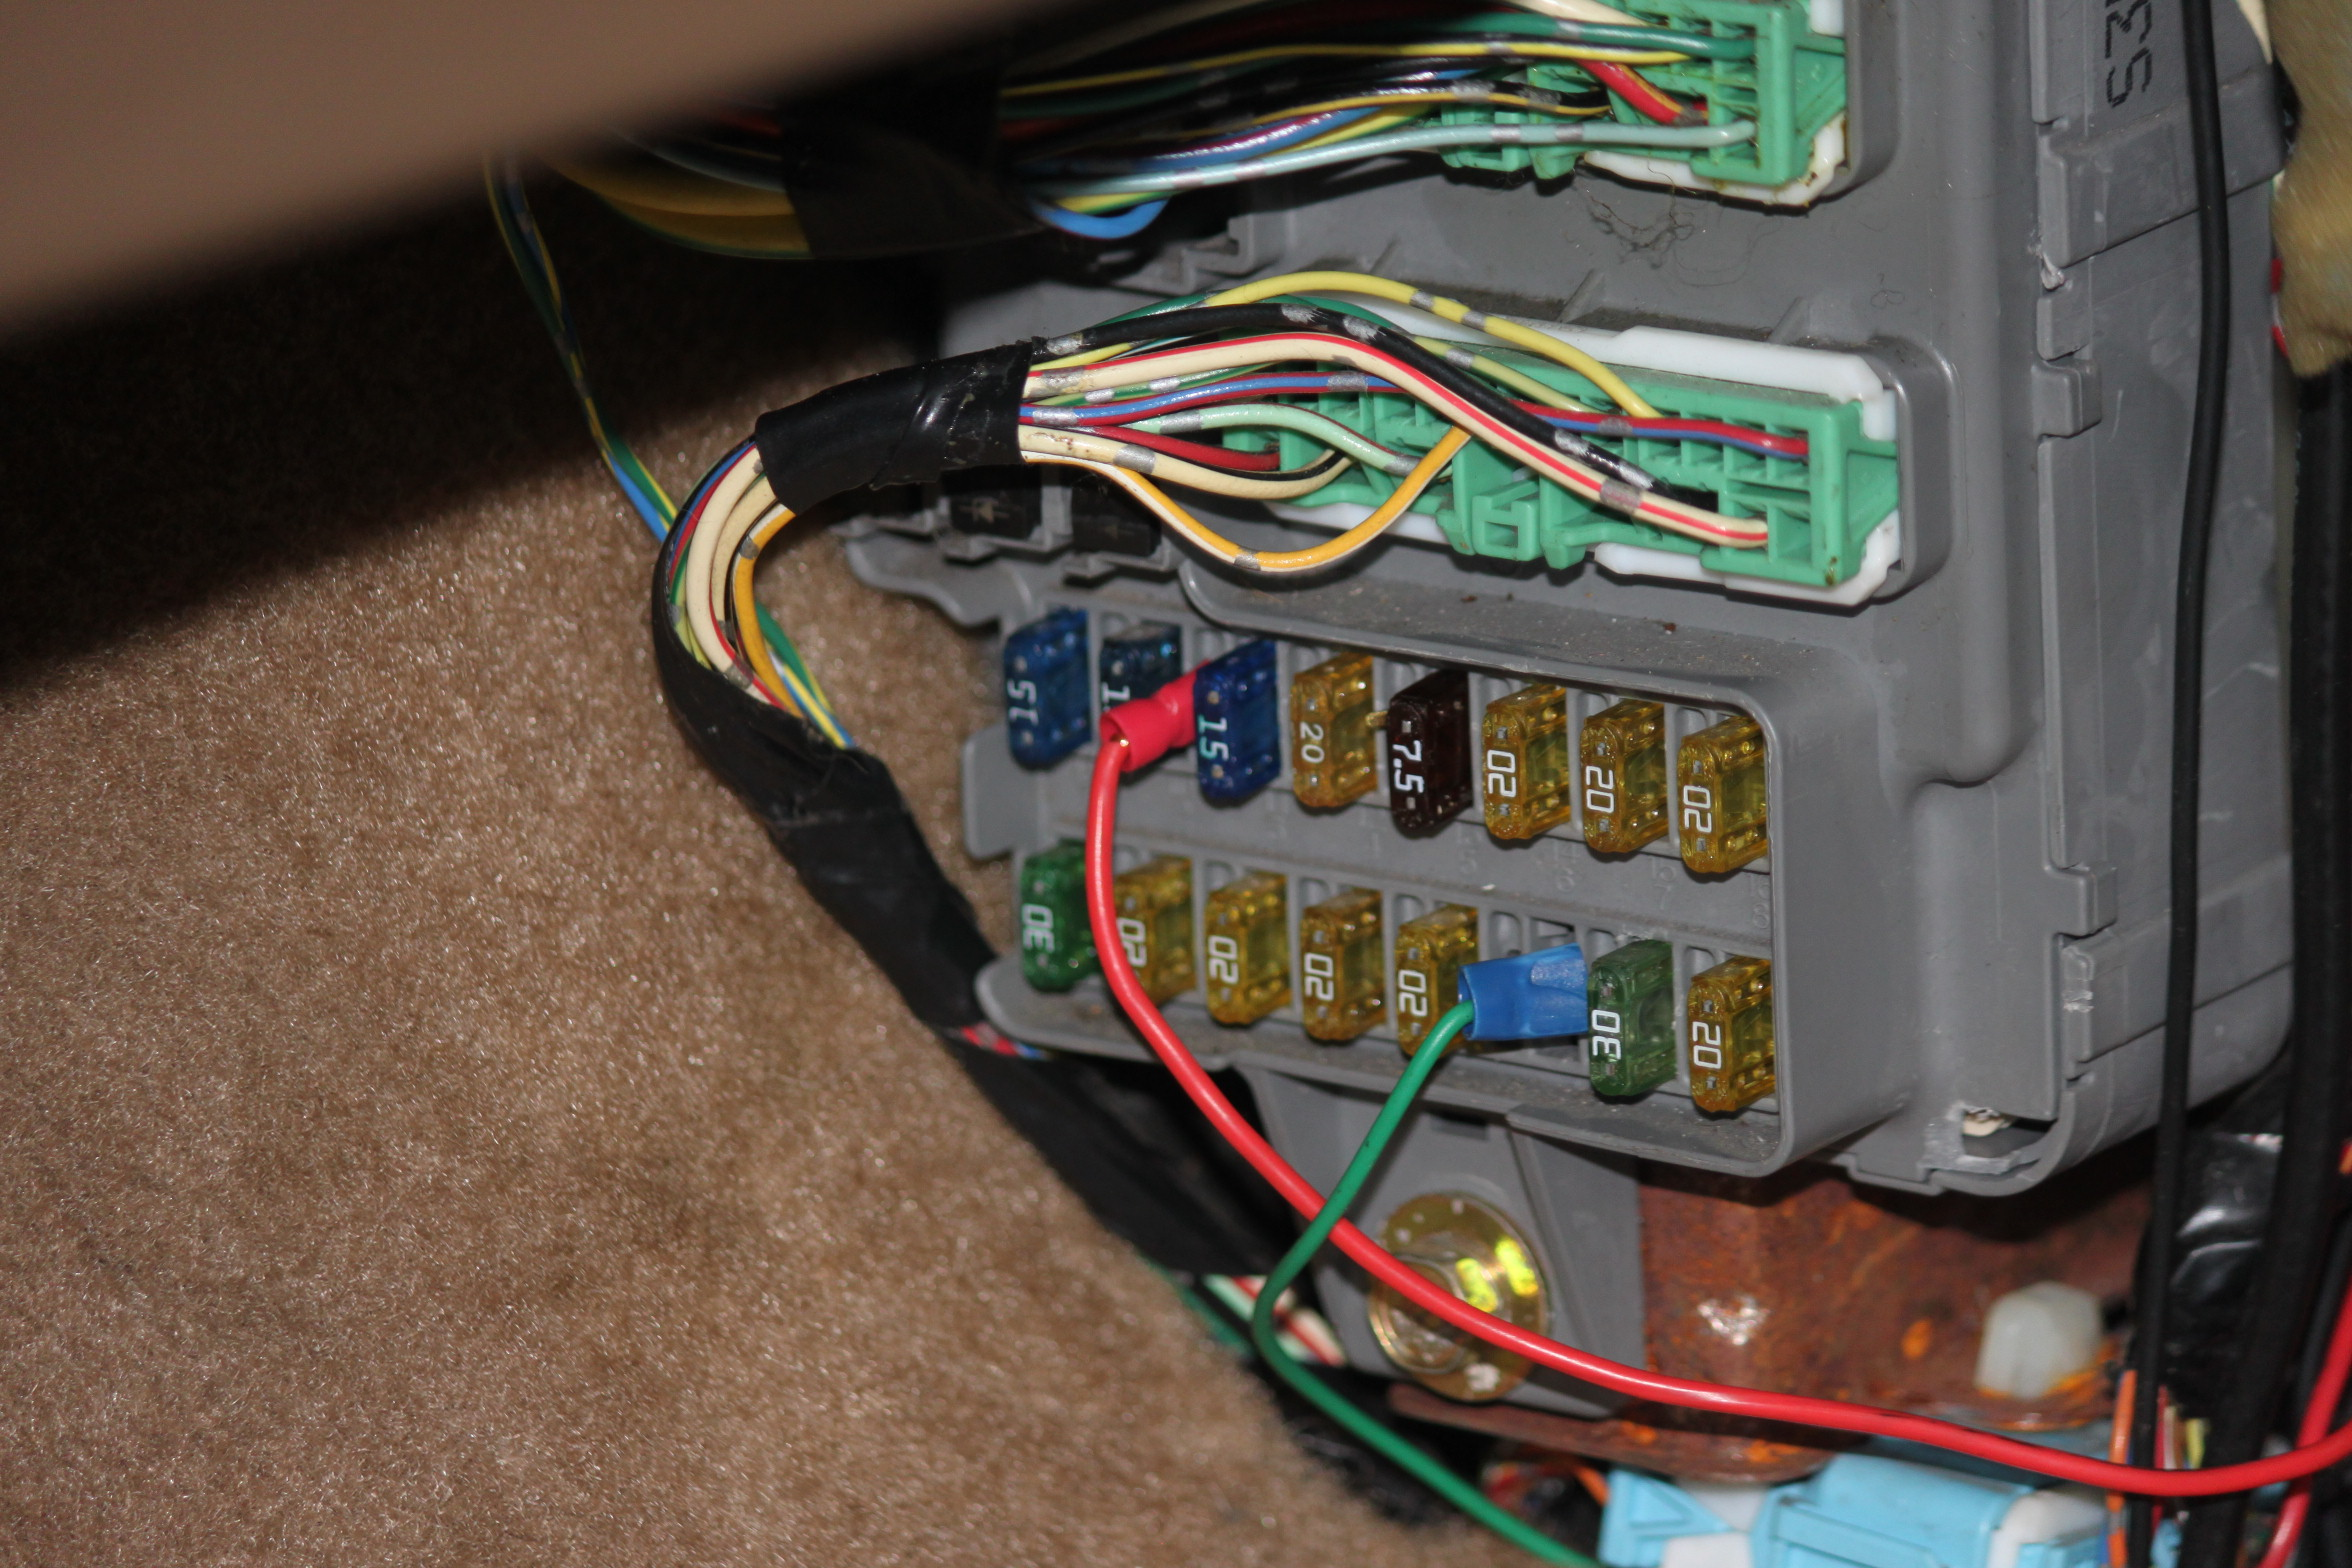 02 Acura Mdx Fuse Box Location Another Blog About Wiring Diagram 2008 2002 U2022 Rh Ok2 Infoservice Ru